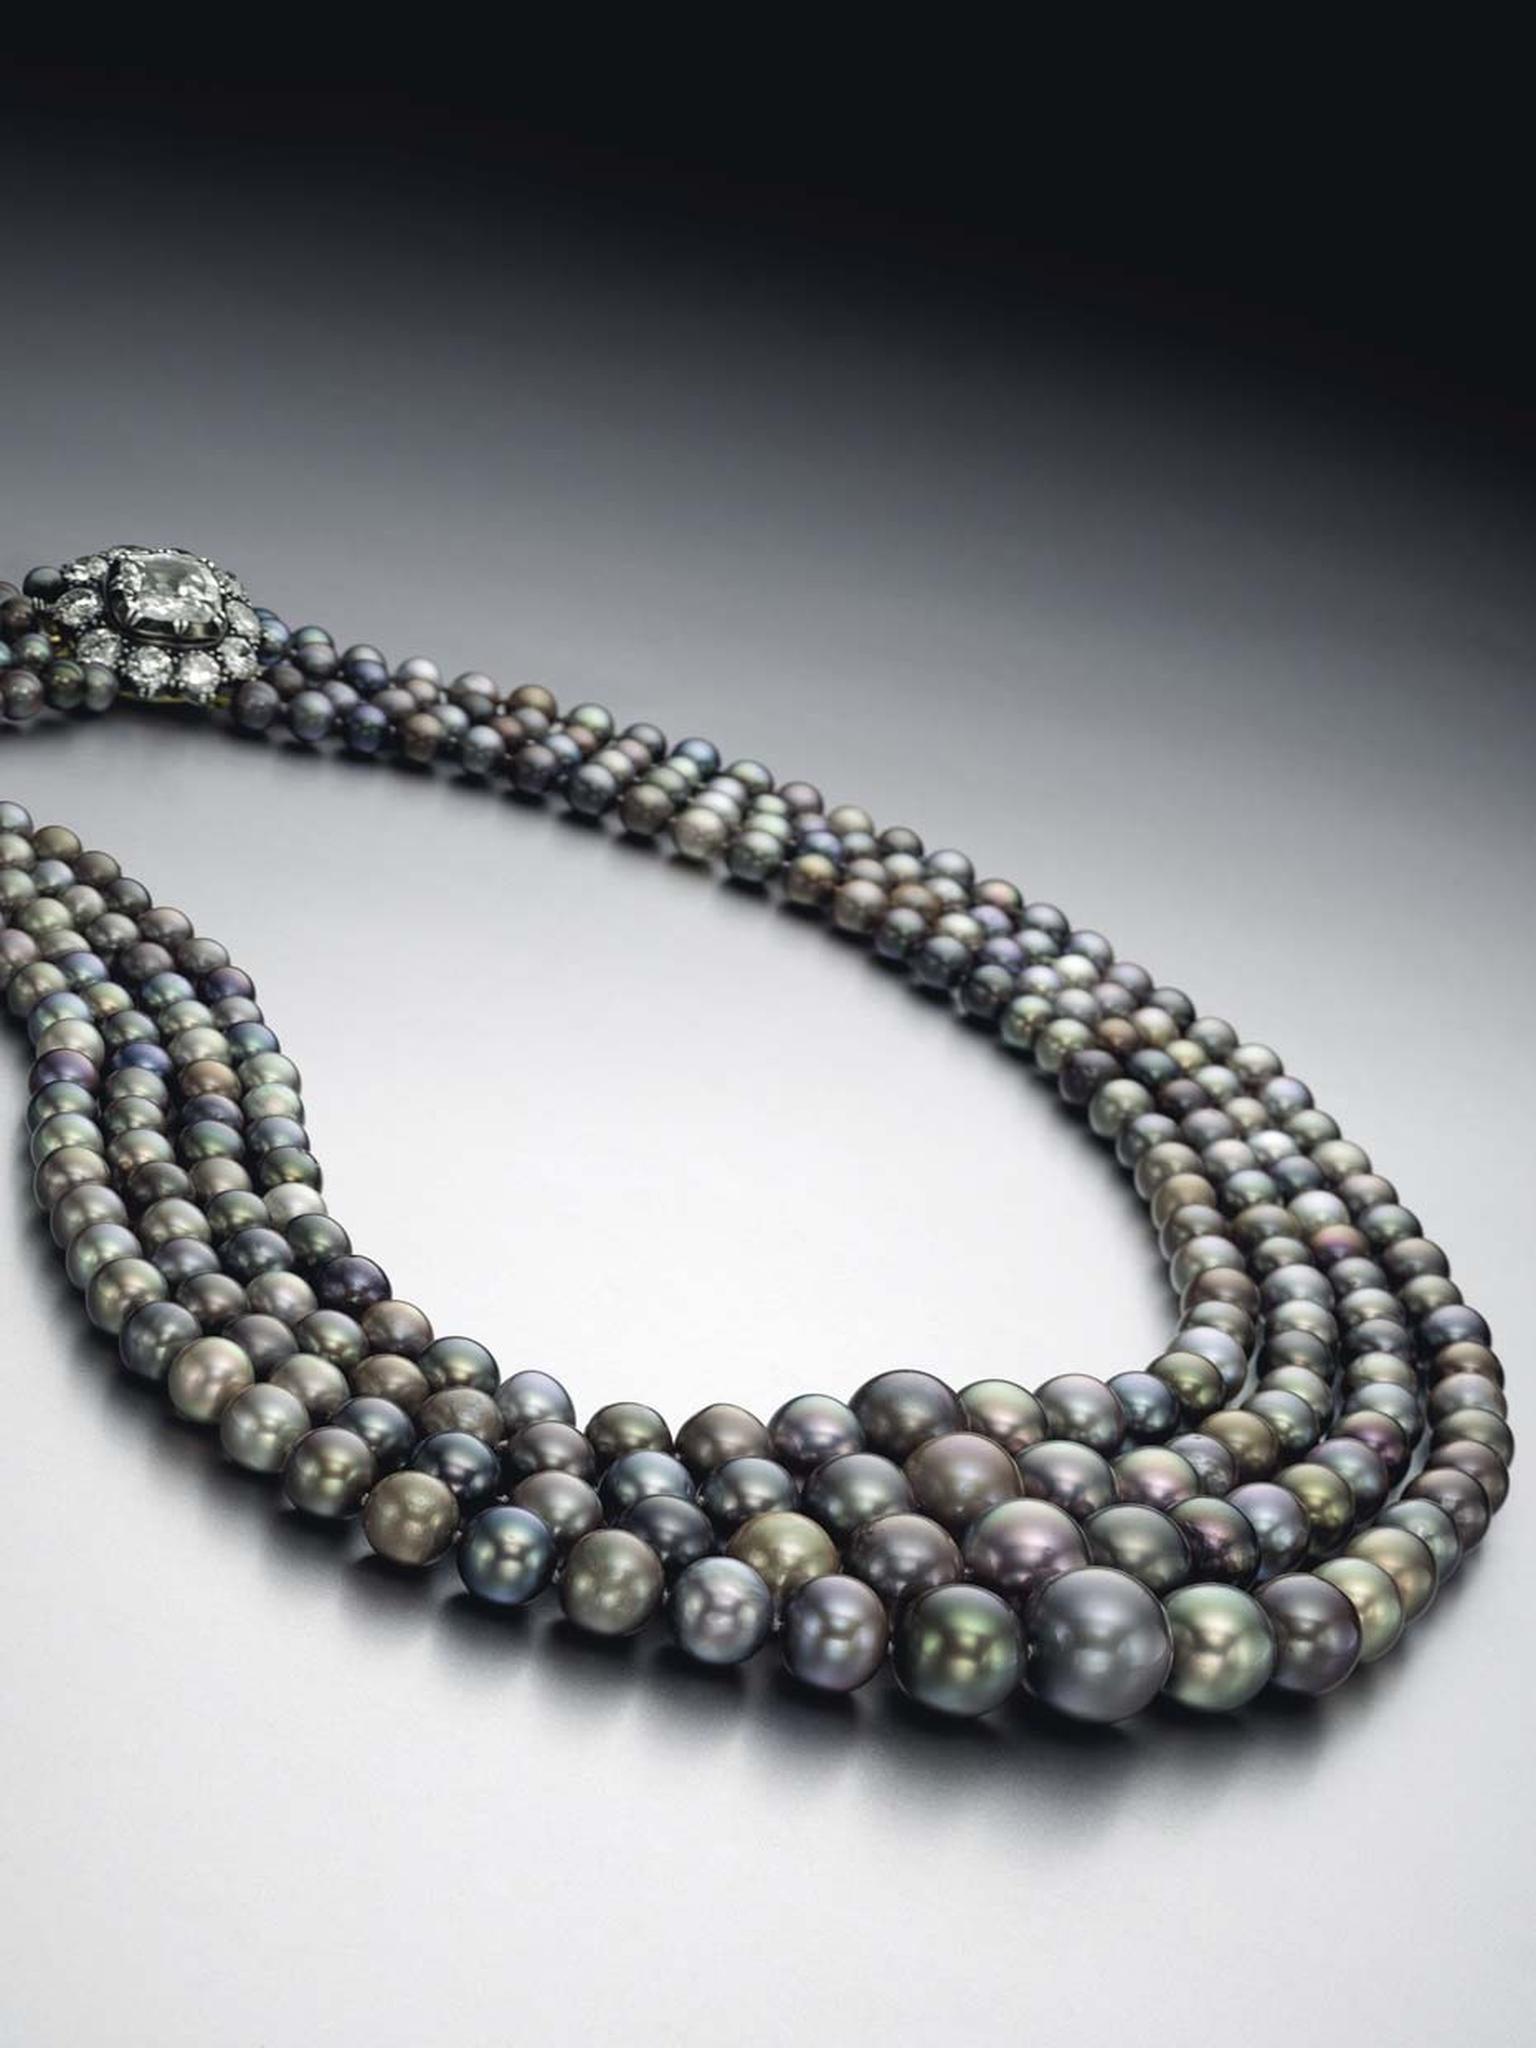 This four-strand natural pearl necklace, set with colored saltwater gems, set a new world record for a coloured pearl necklace , when it sold for just over $5 million at Christie's Magnificent Jewels sale in New York on April 14.